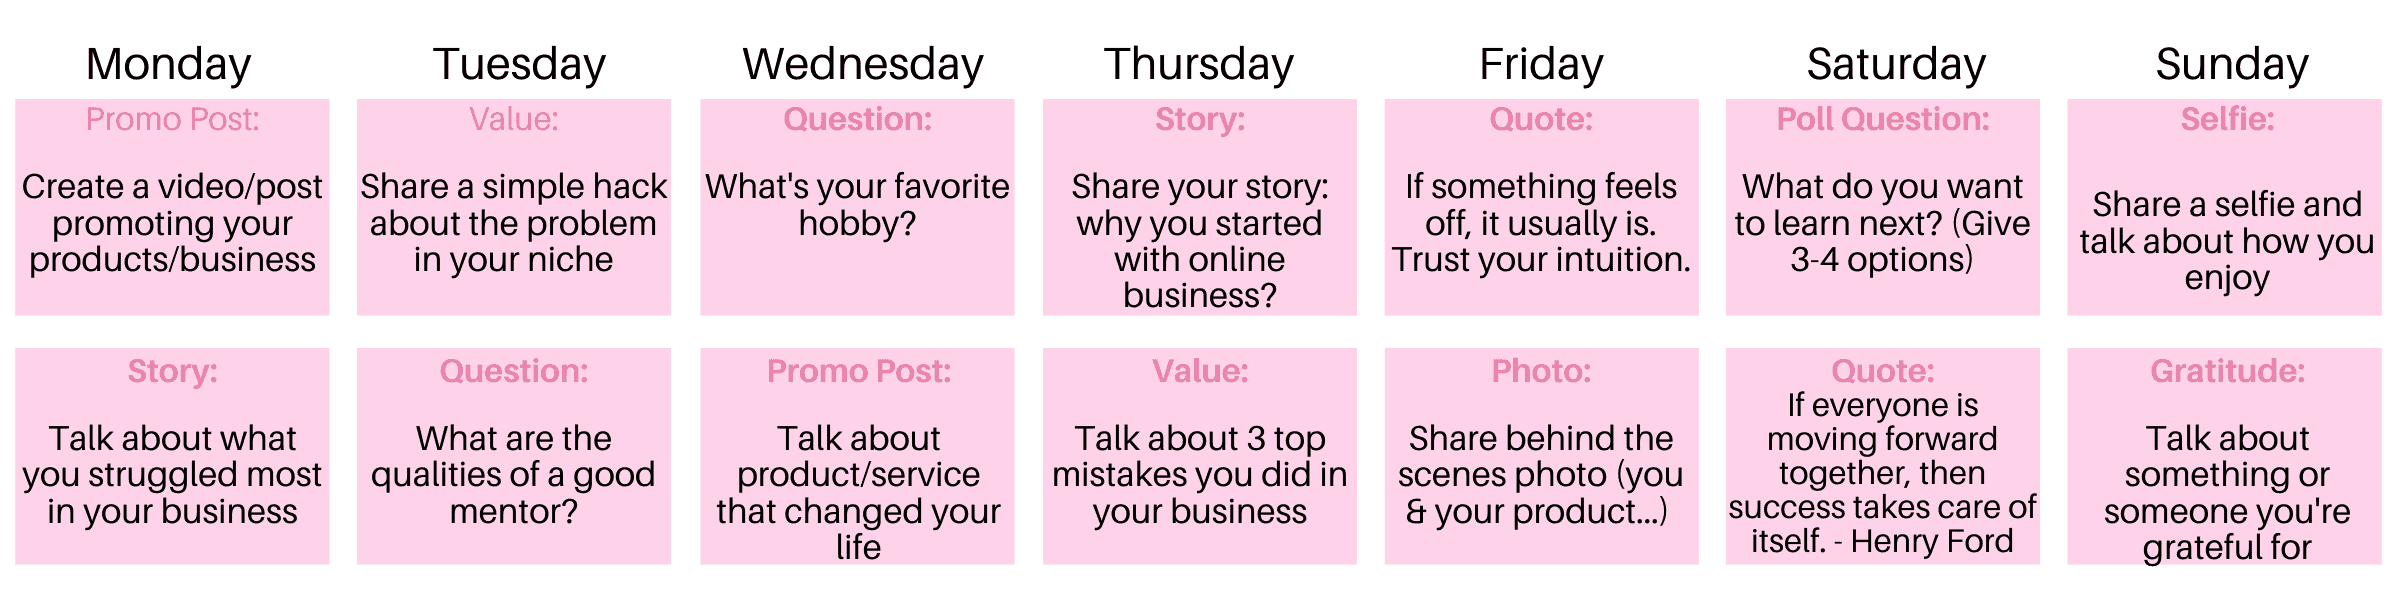 two-week example of the social media content calendar